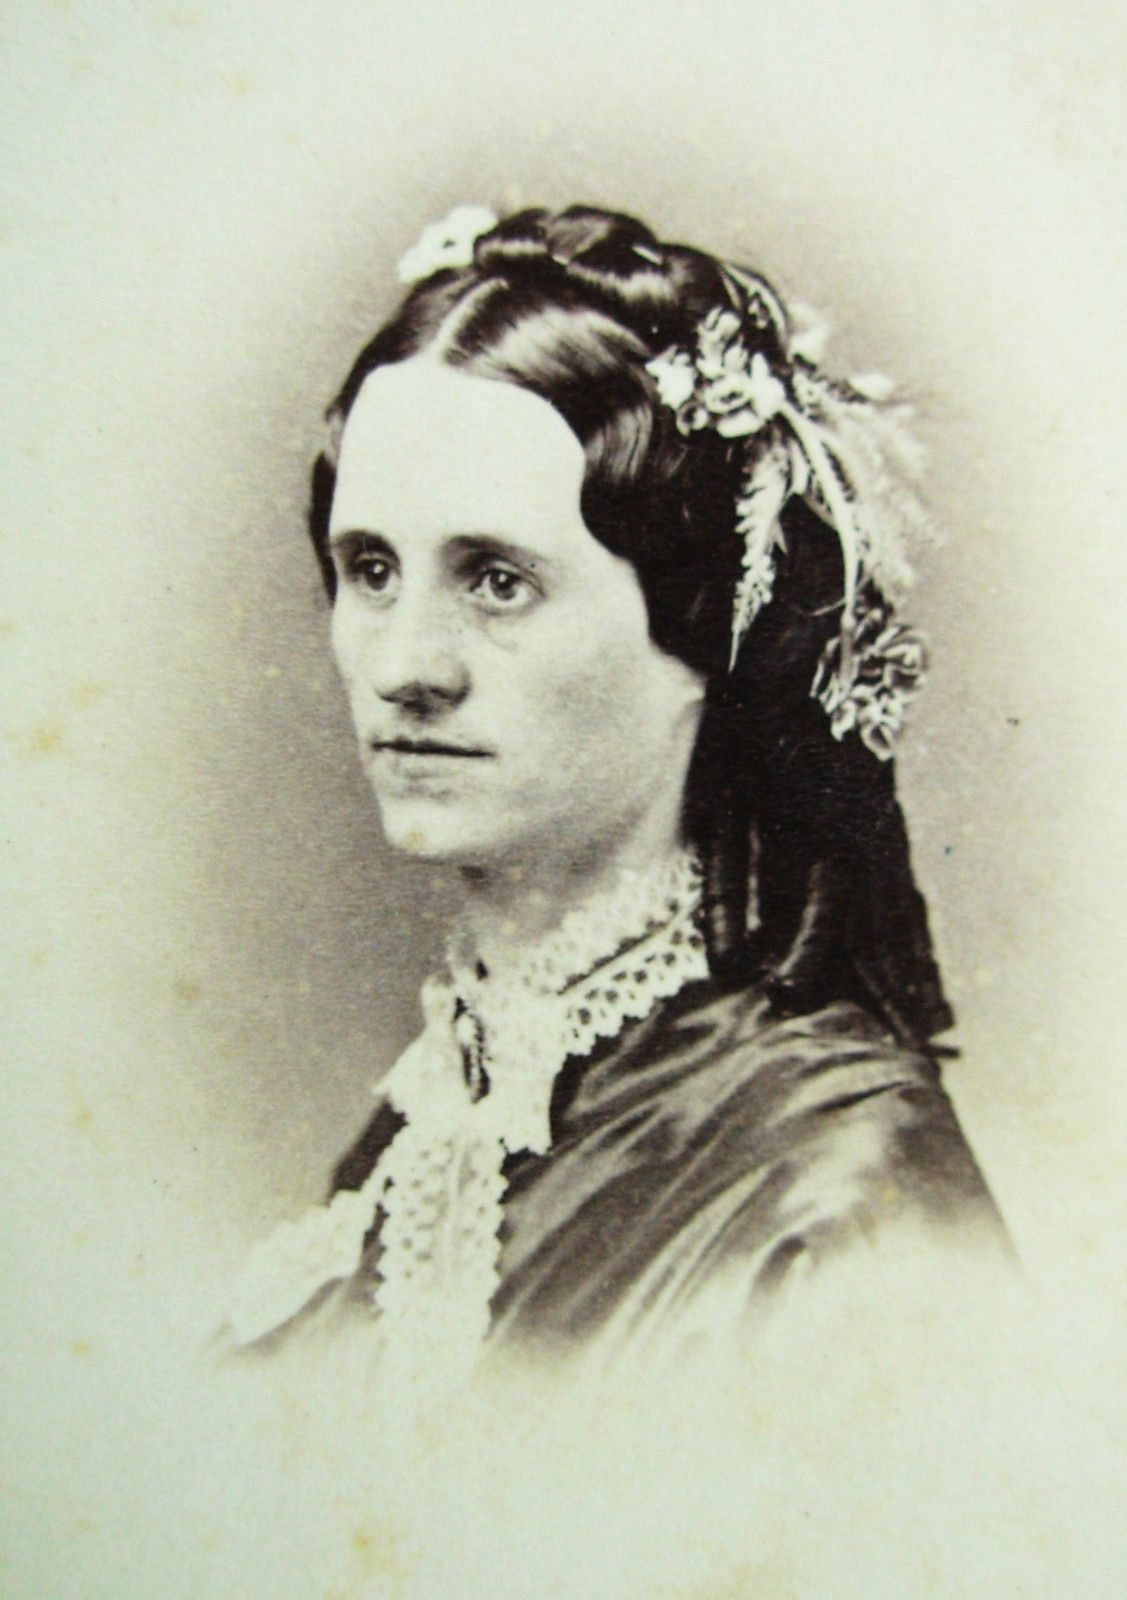 civil-war-era-cdv-photo-lovely-young-woman-with-lovely-hair